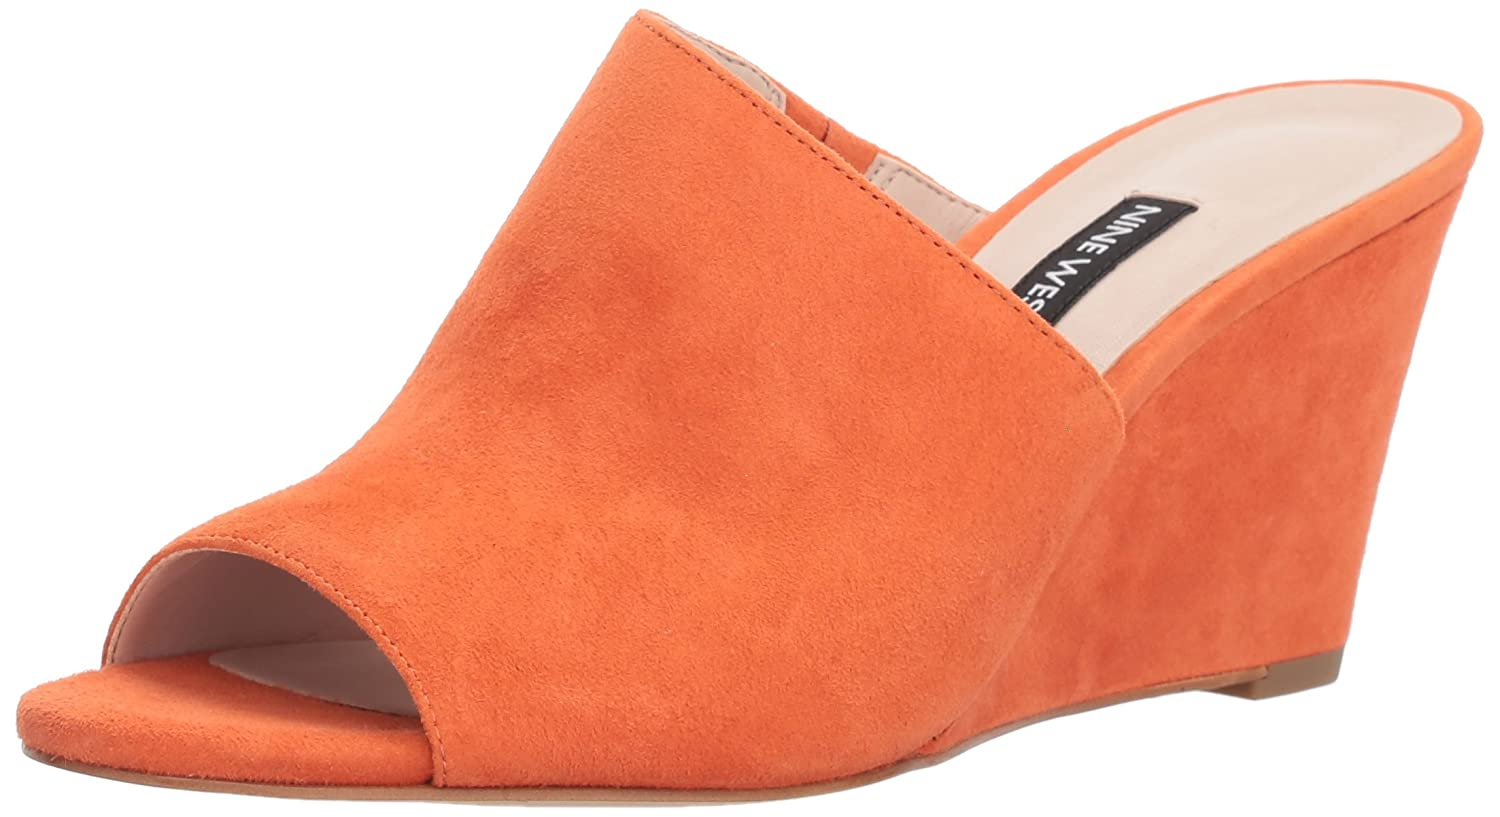 Nine West Women's Janissah Slide Sandal B079P7ZL6L 10.5 B(M) US|Orange Suede